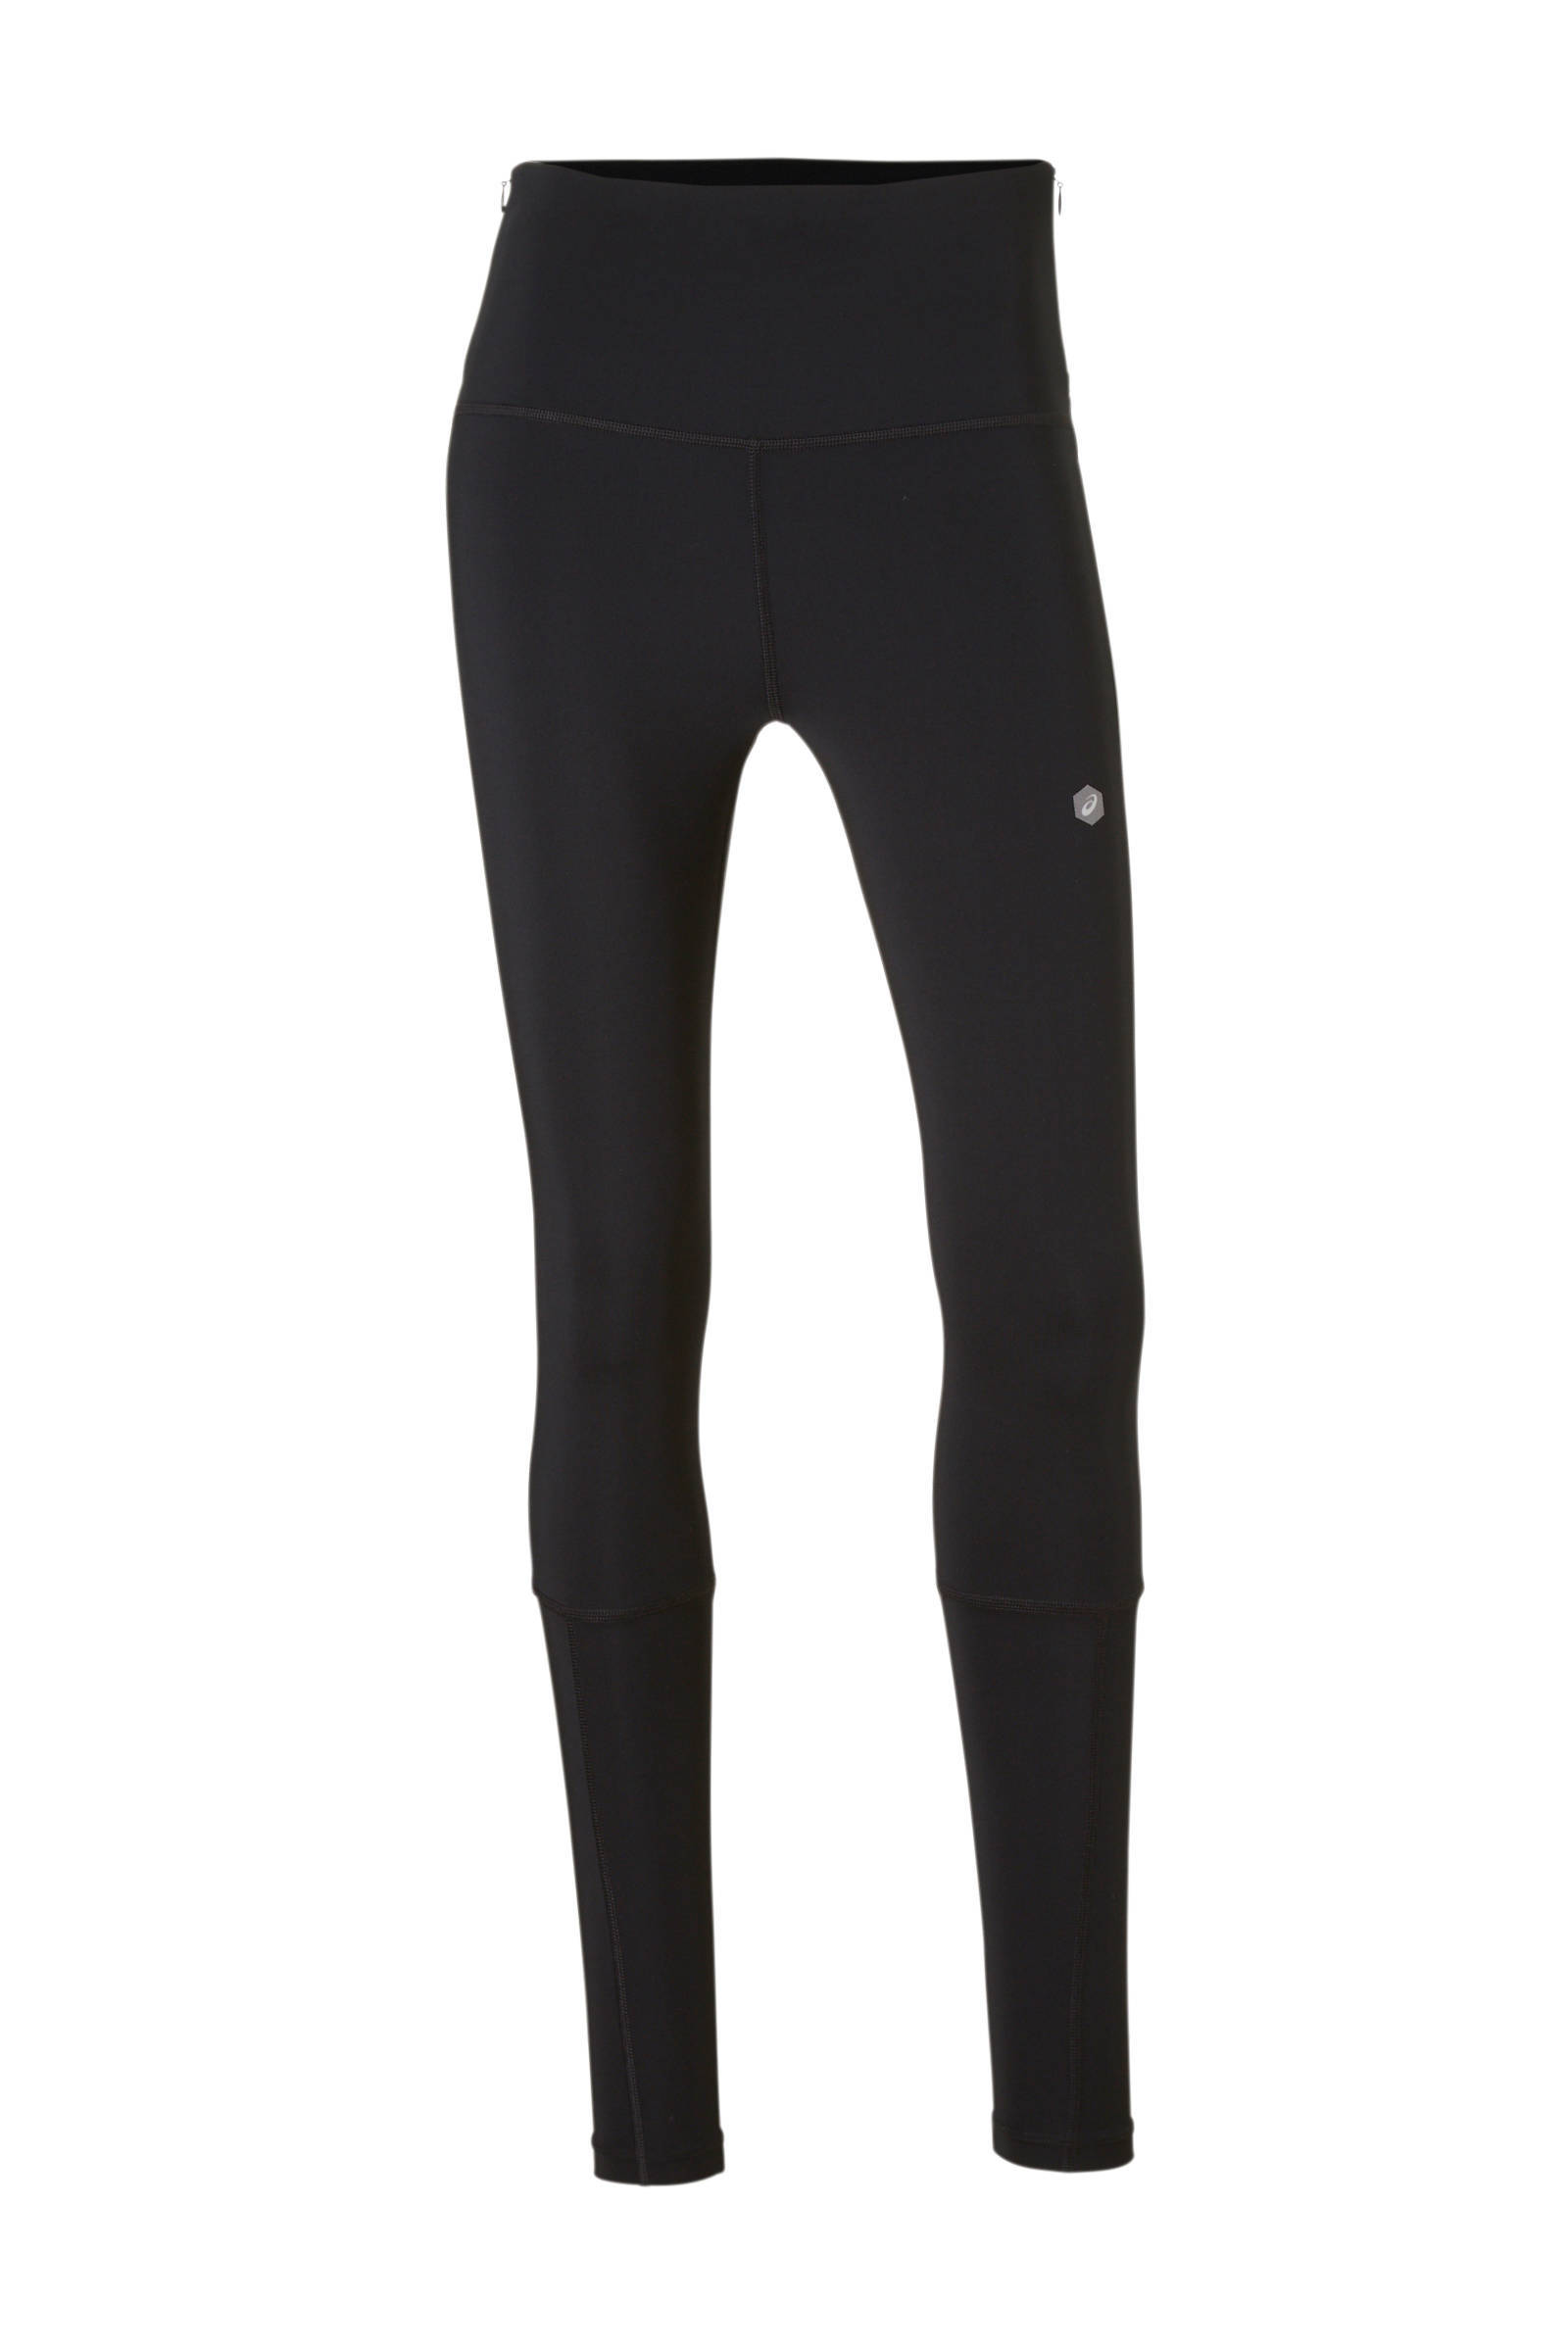 asics dames legging